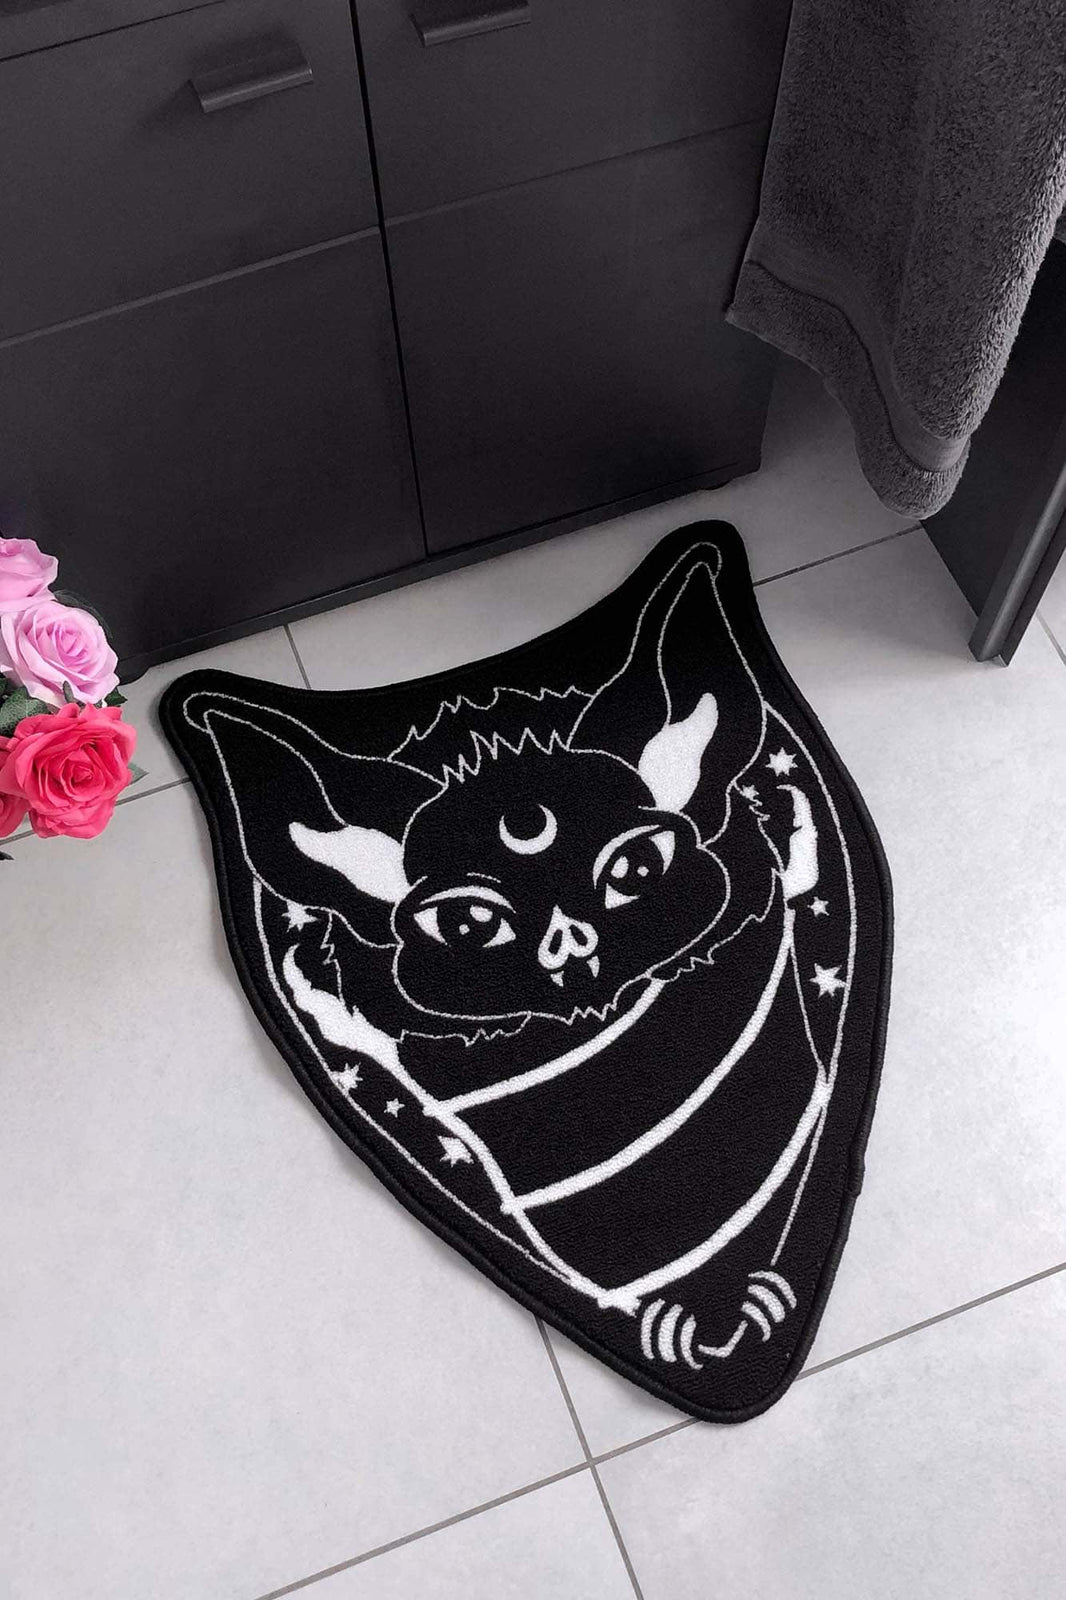 Nocturnal Bathroom Rug